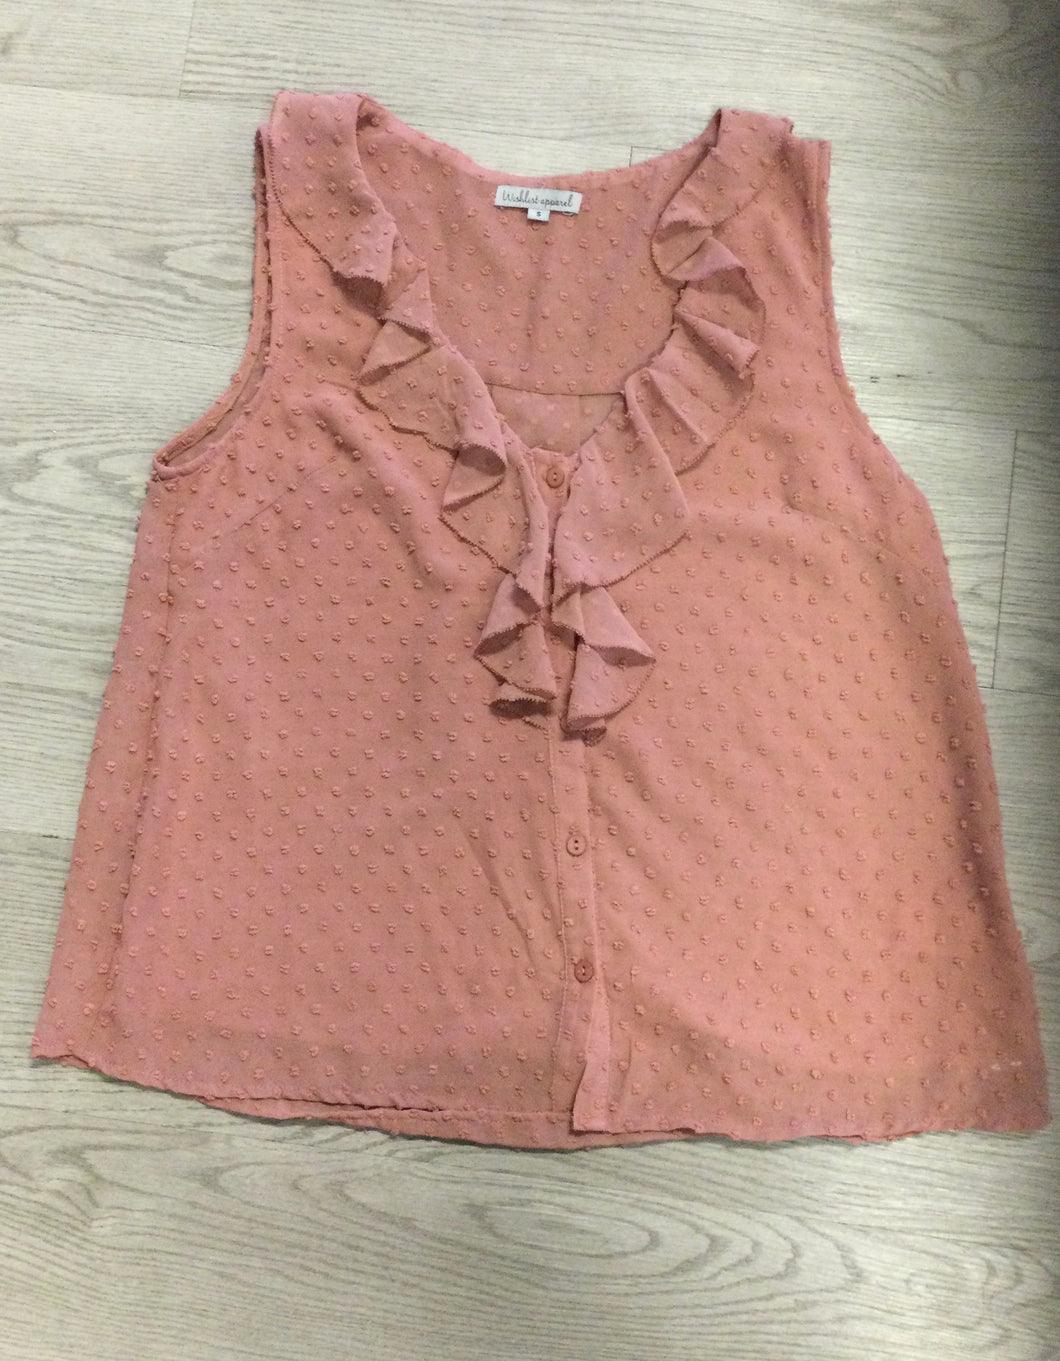 Dusty Rose tank top with lapel and buttons